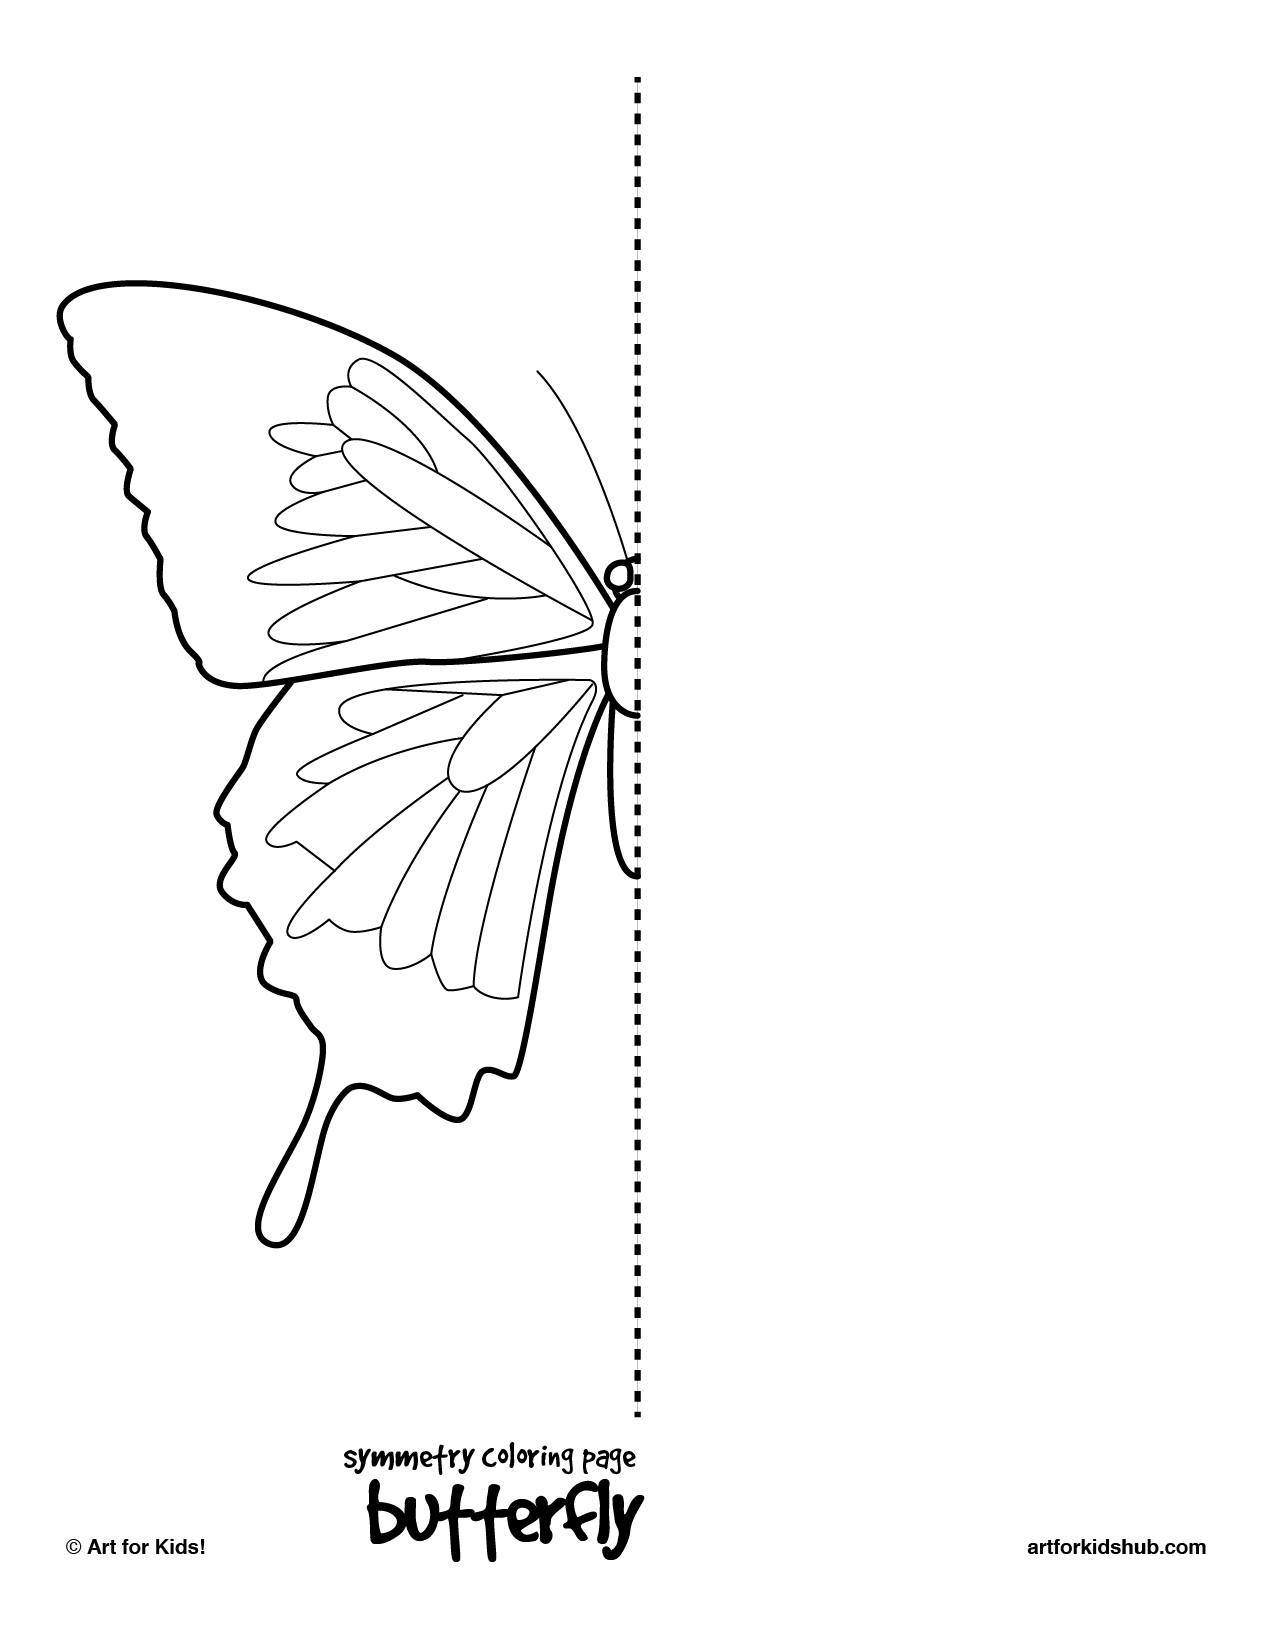 Bee and butterfly coloring pages - Symmetry Coloring Page Butterfly